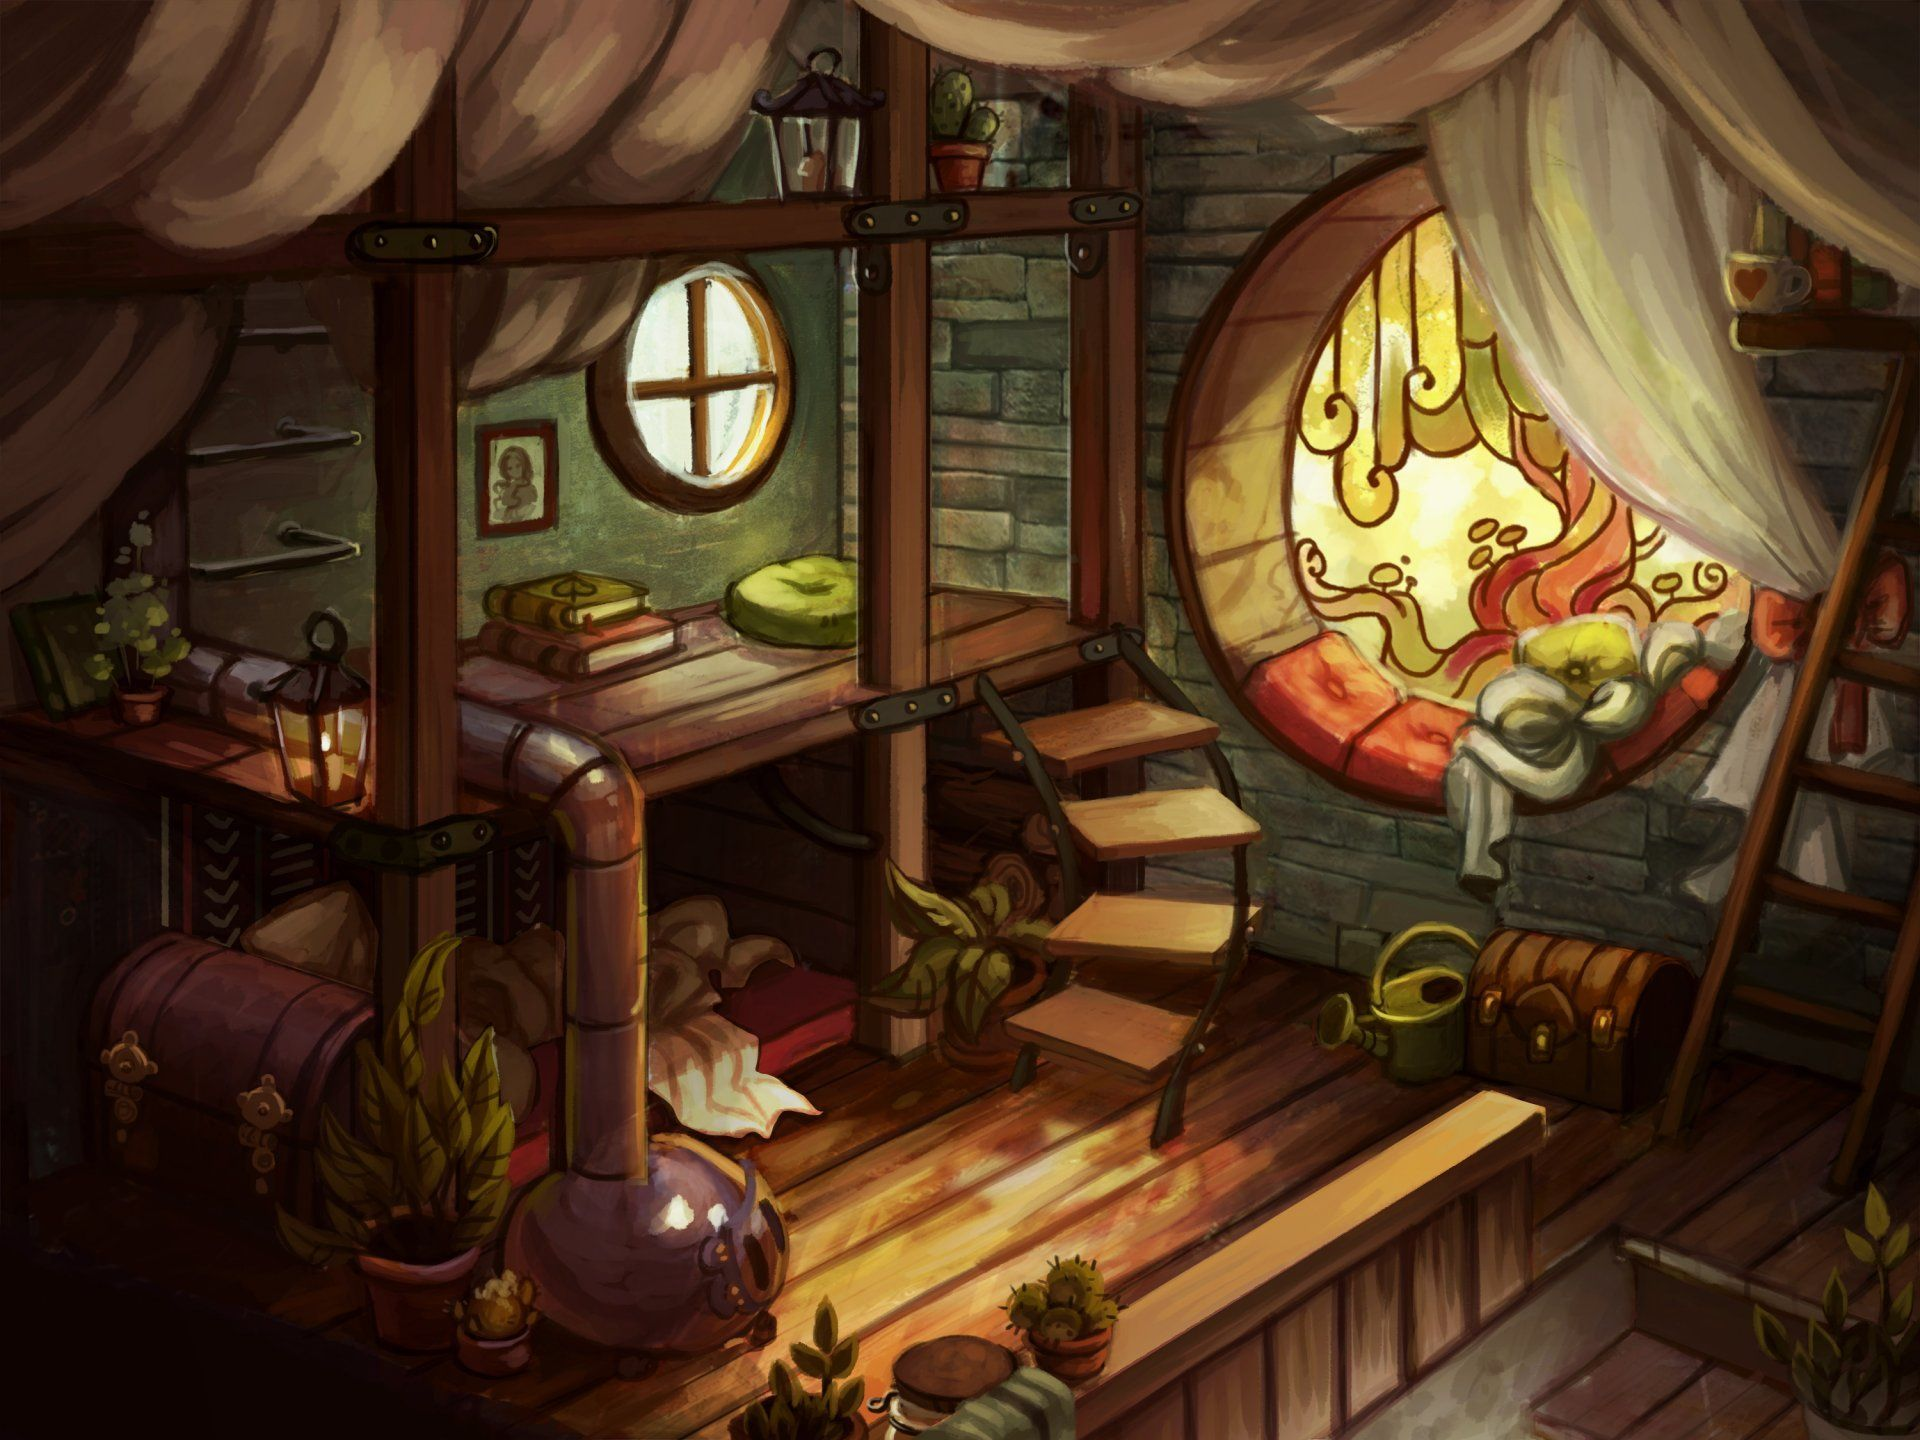 Pin By Gina Martin On Gallery Art Environment Concept Art Concept Art The top fantasy rooms